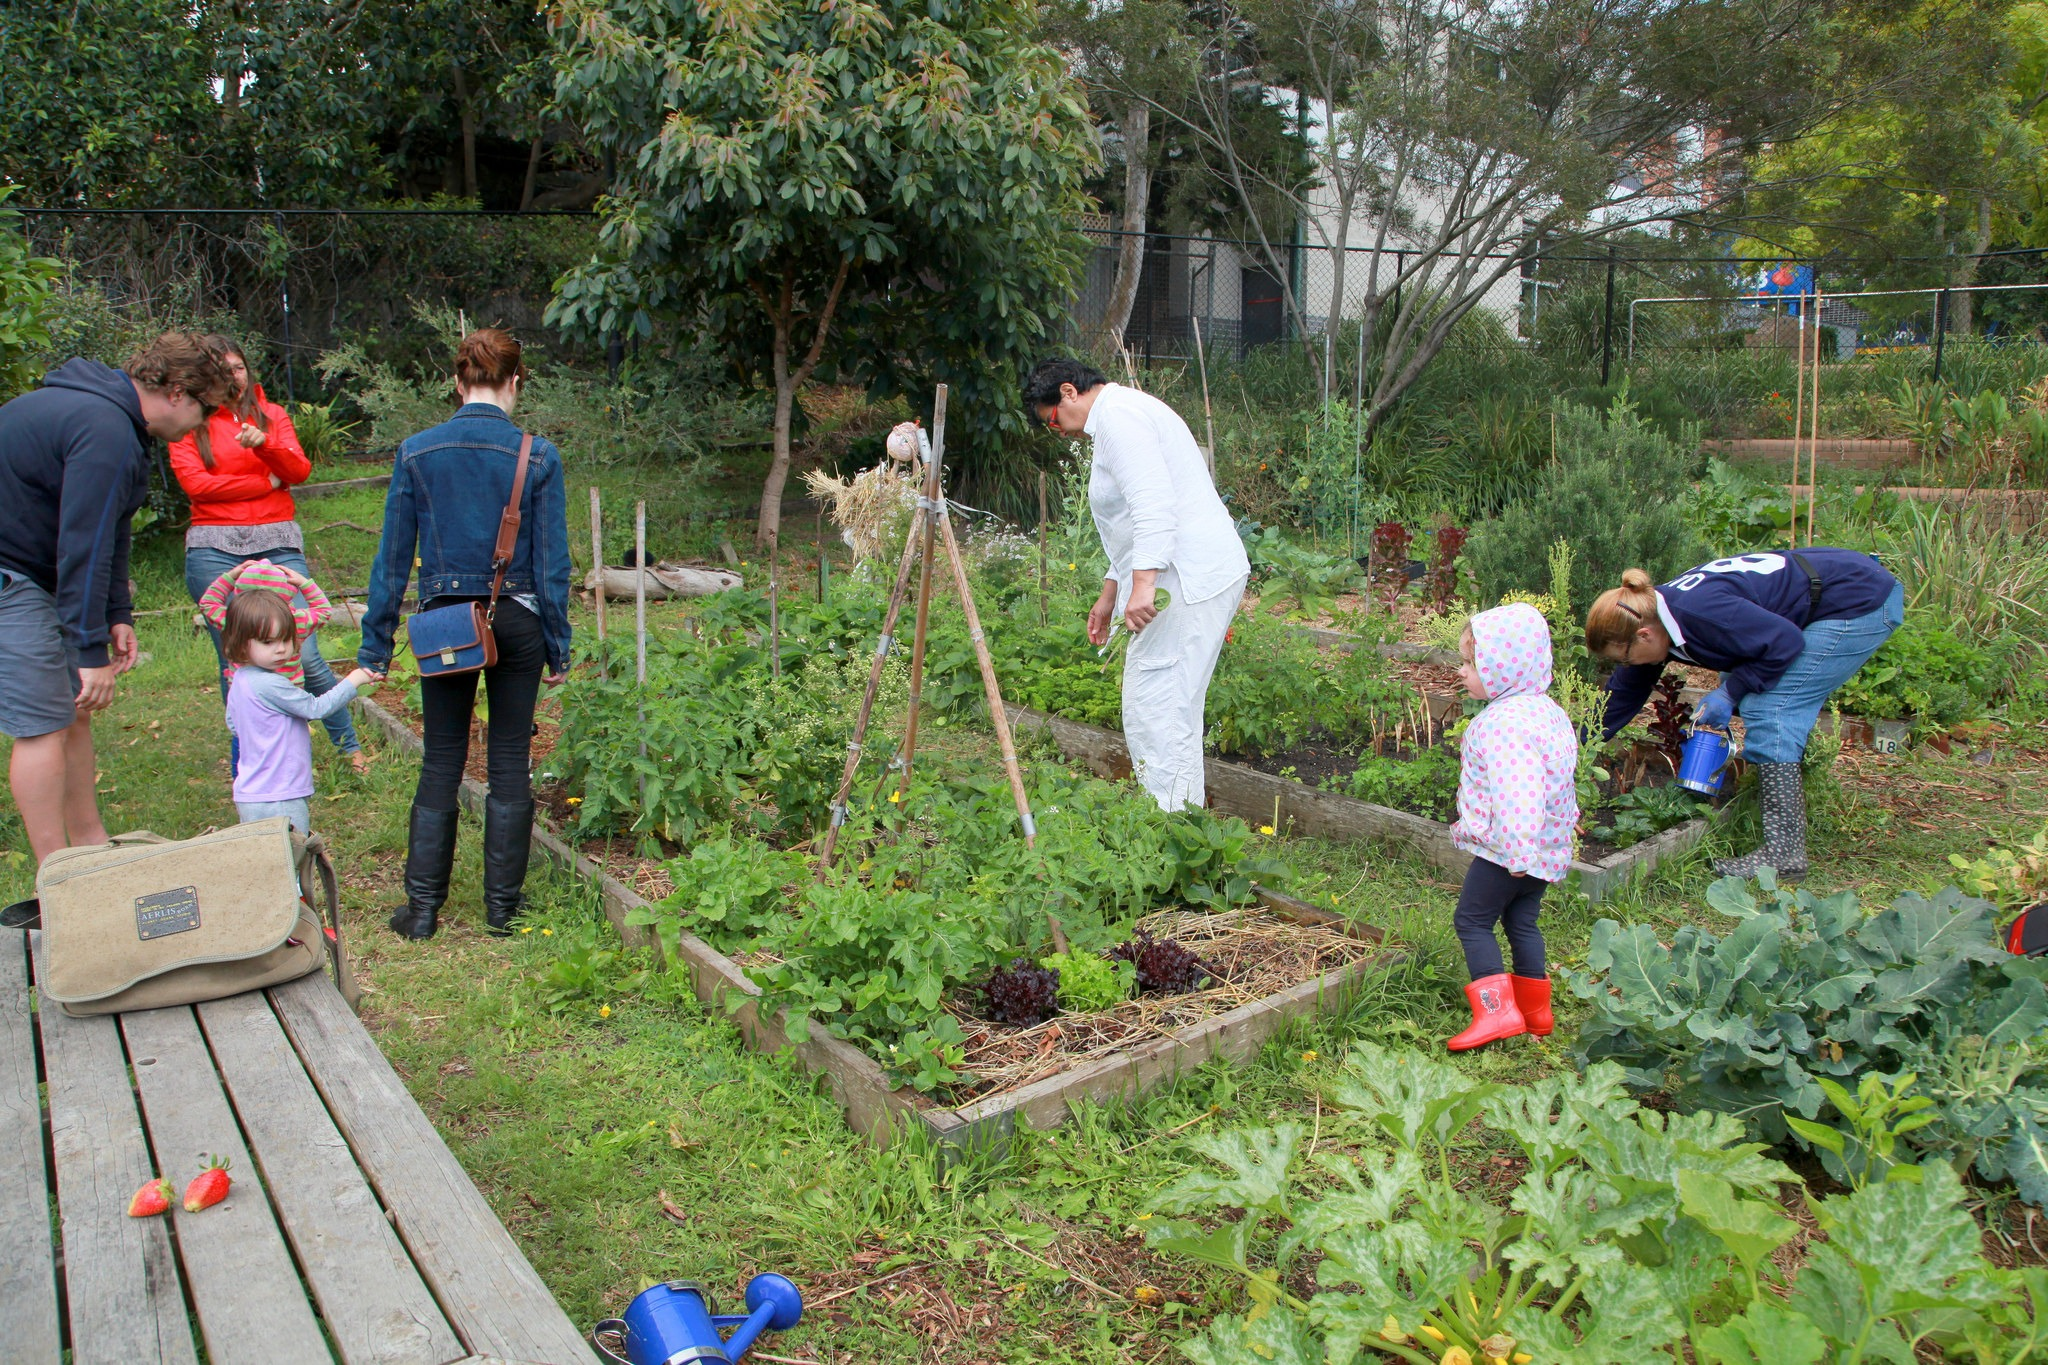 a group of people with their children working together to take care of the community garden